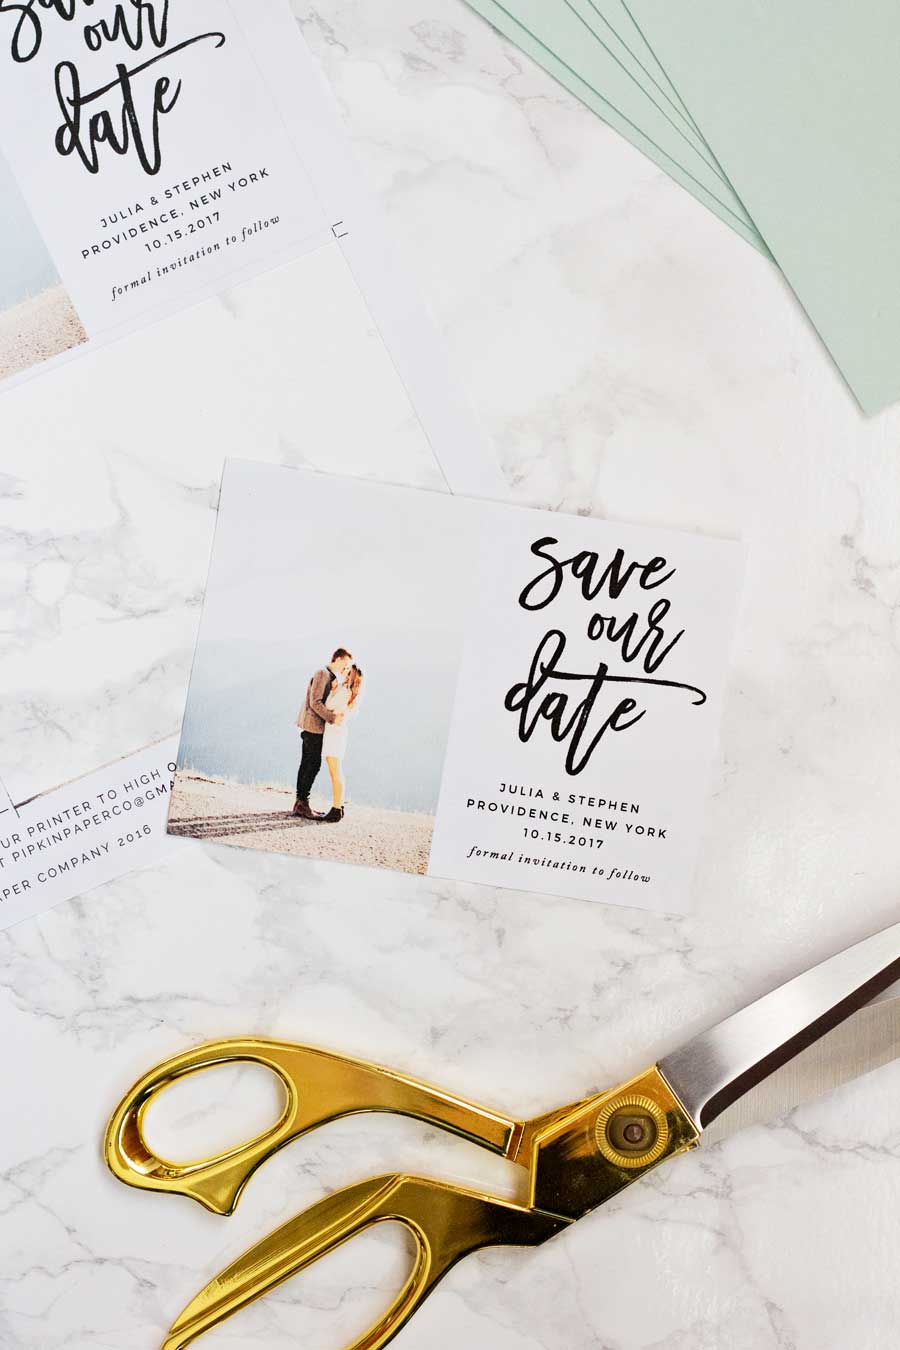 We Ll Show You How To Make Your Own Gorgeous Save The Date Magnets At